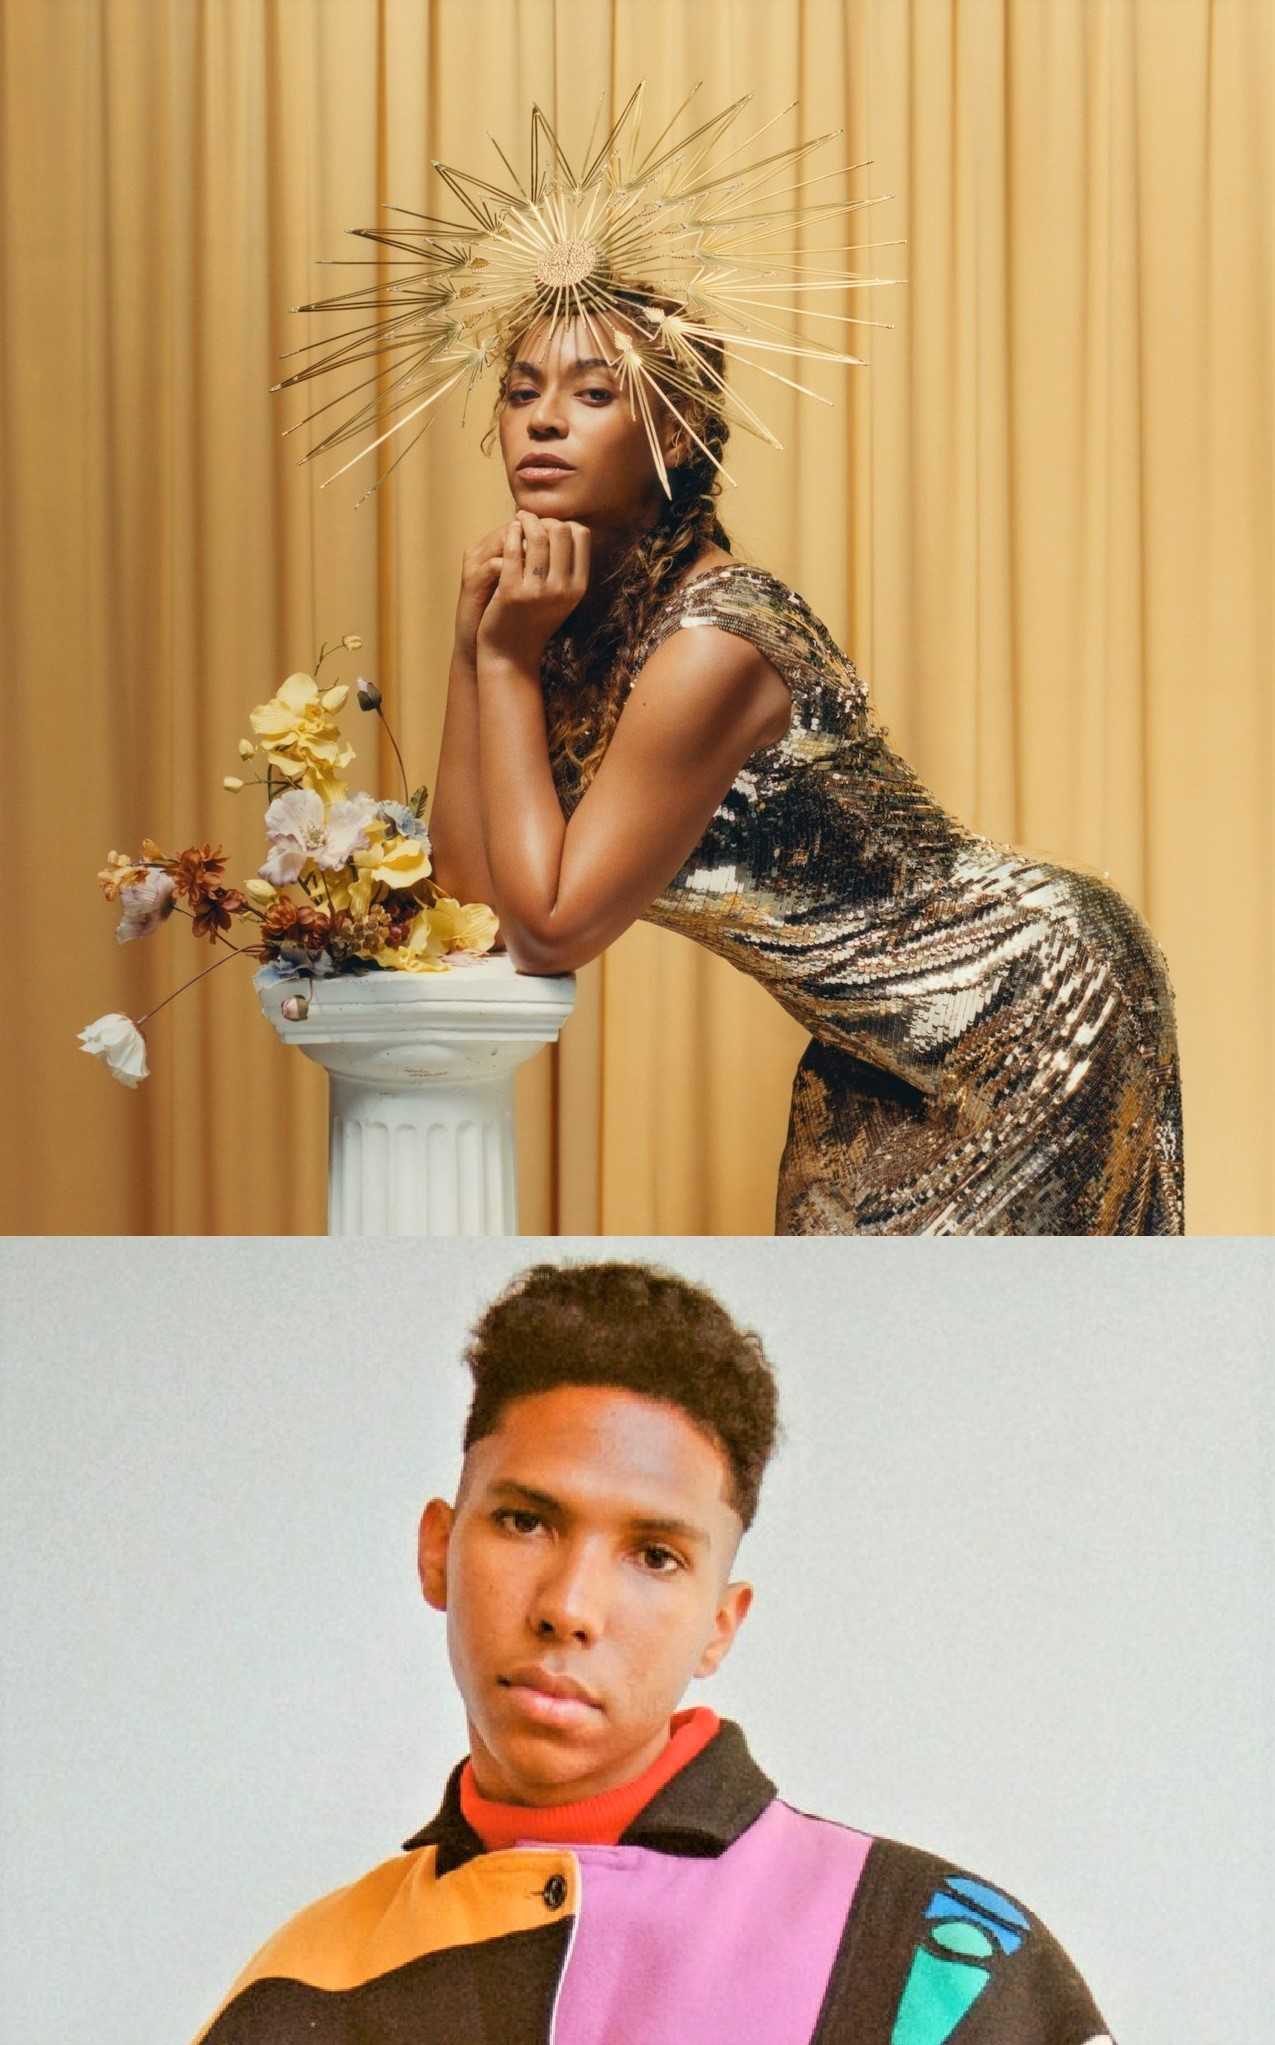 Beyonce+by+Tyler+Mitchell+for+Vogue+US+Sept+2018+combo-(3).jpg